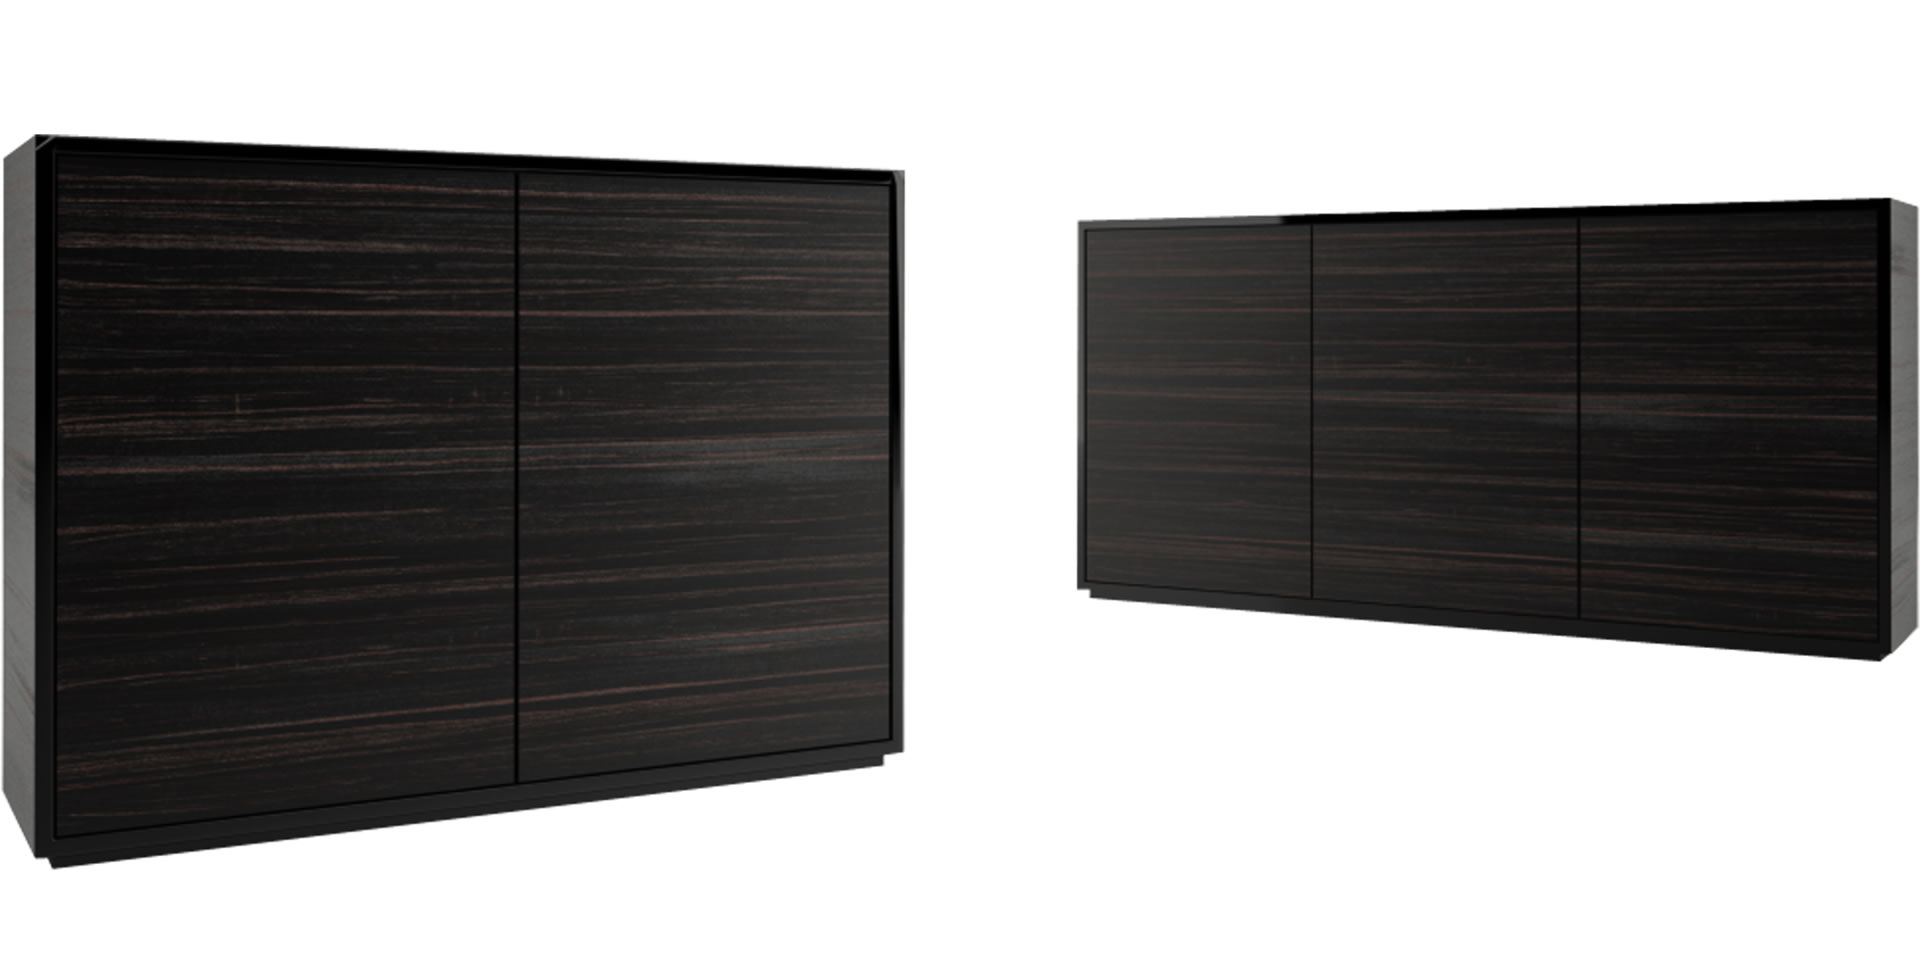 ikea kommode dunkles holz. Black Bedroom Furniture Sets. Home Design Ideas